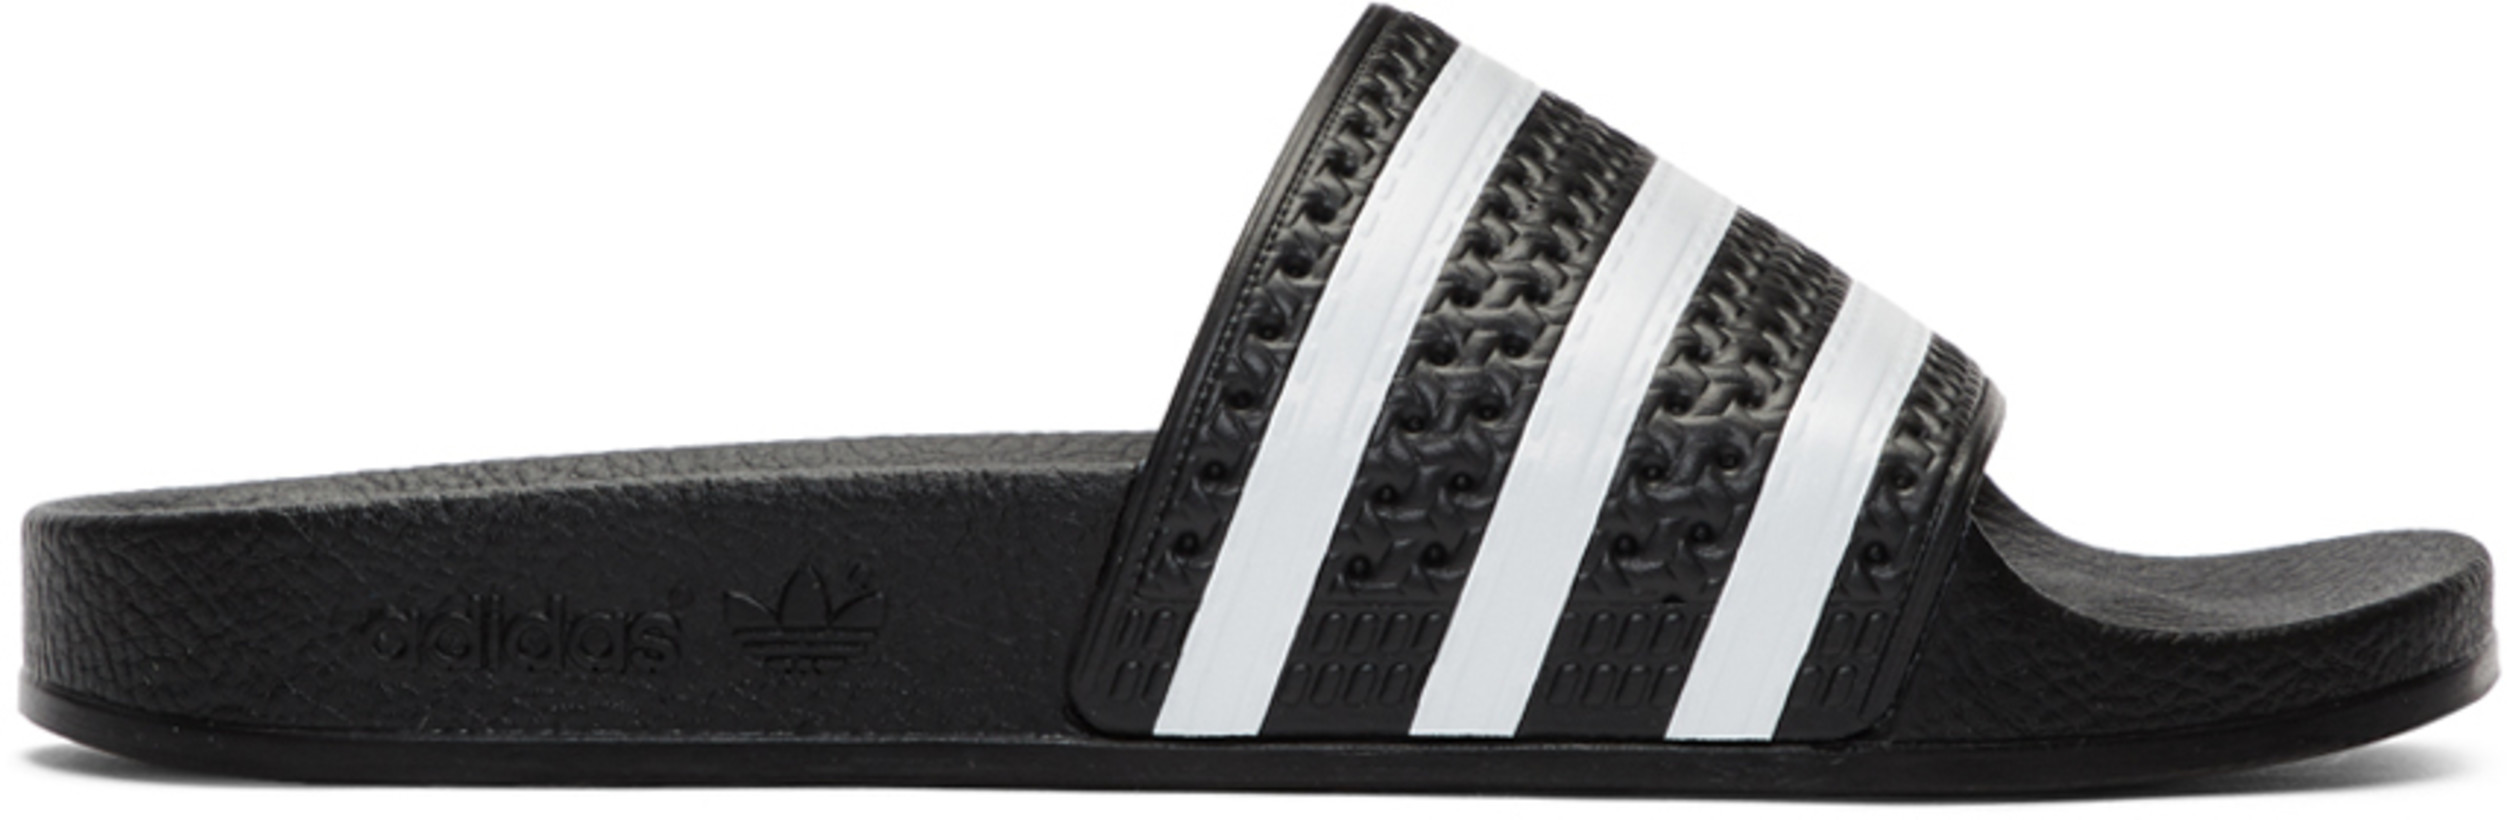 Black & White Adilette Slides by Adidas, available on ssense.com for $36 Chantel Jeffries Shoes Exact Product